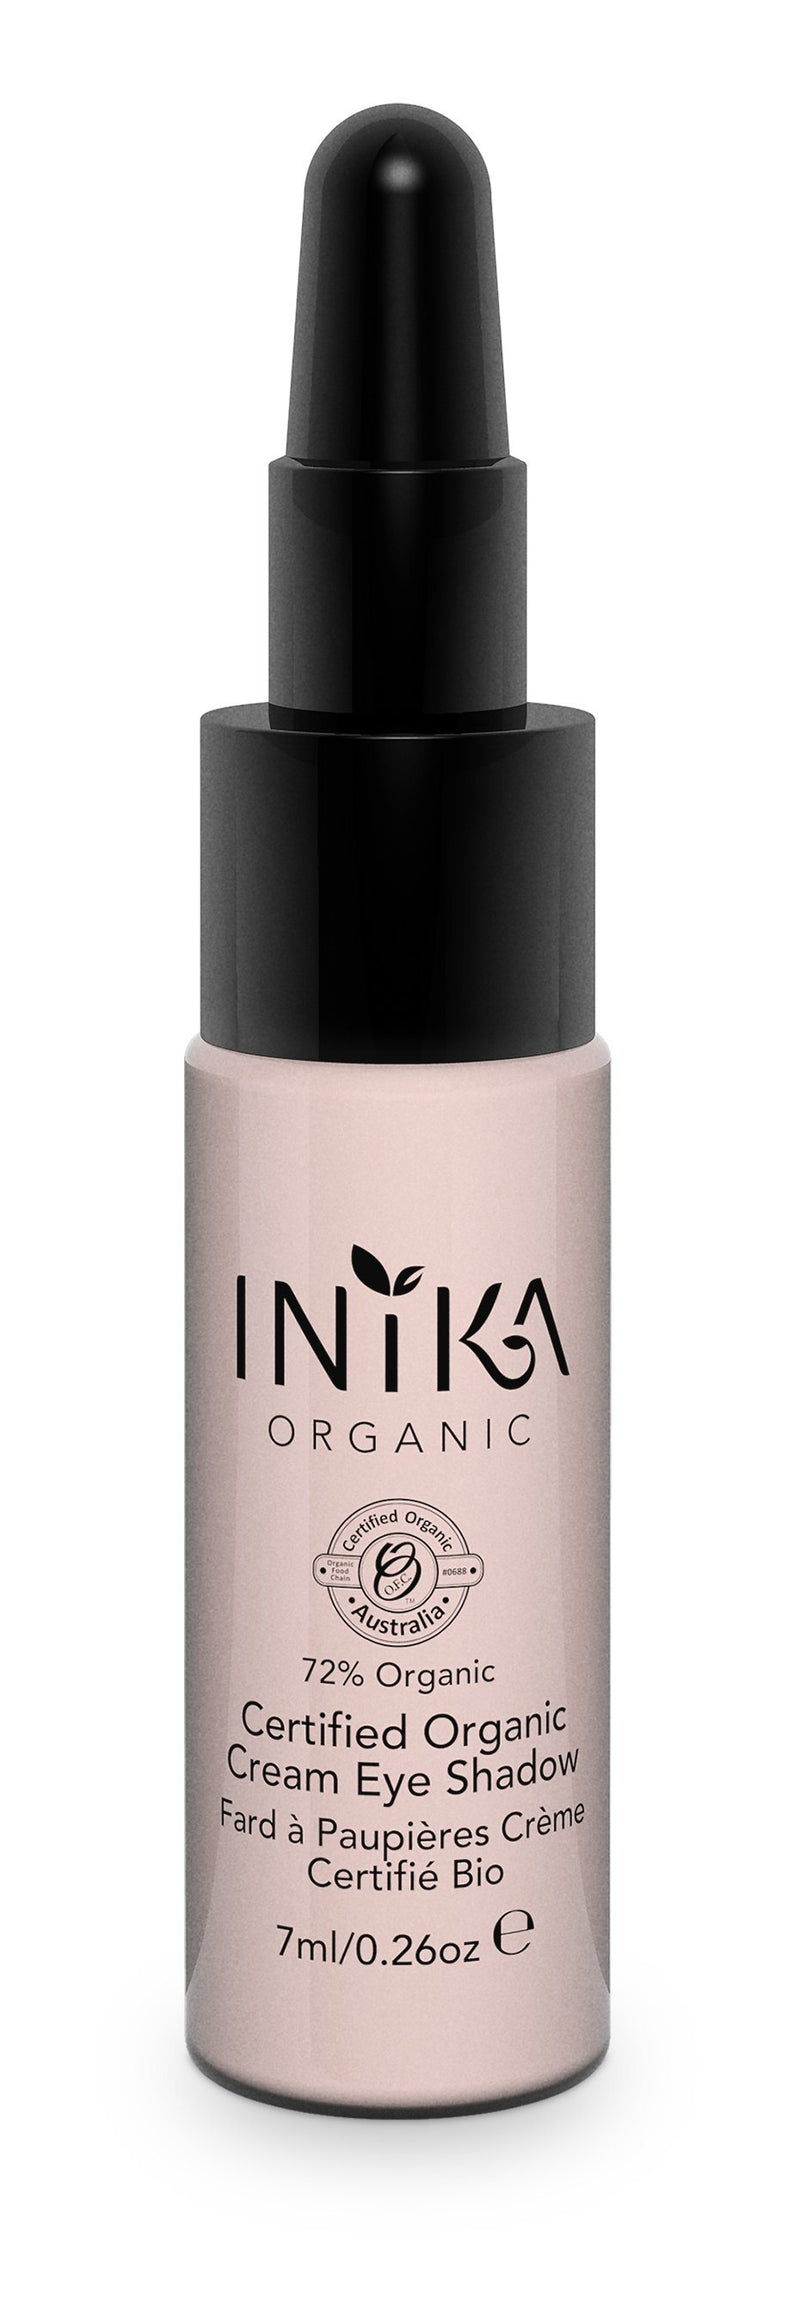 Inika Certified Organic Cream Eye Shadow Natural Makeup Total Beauty Network Pink Cloud